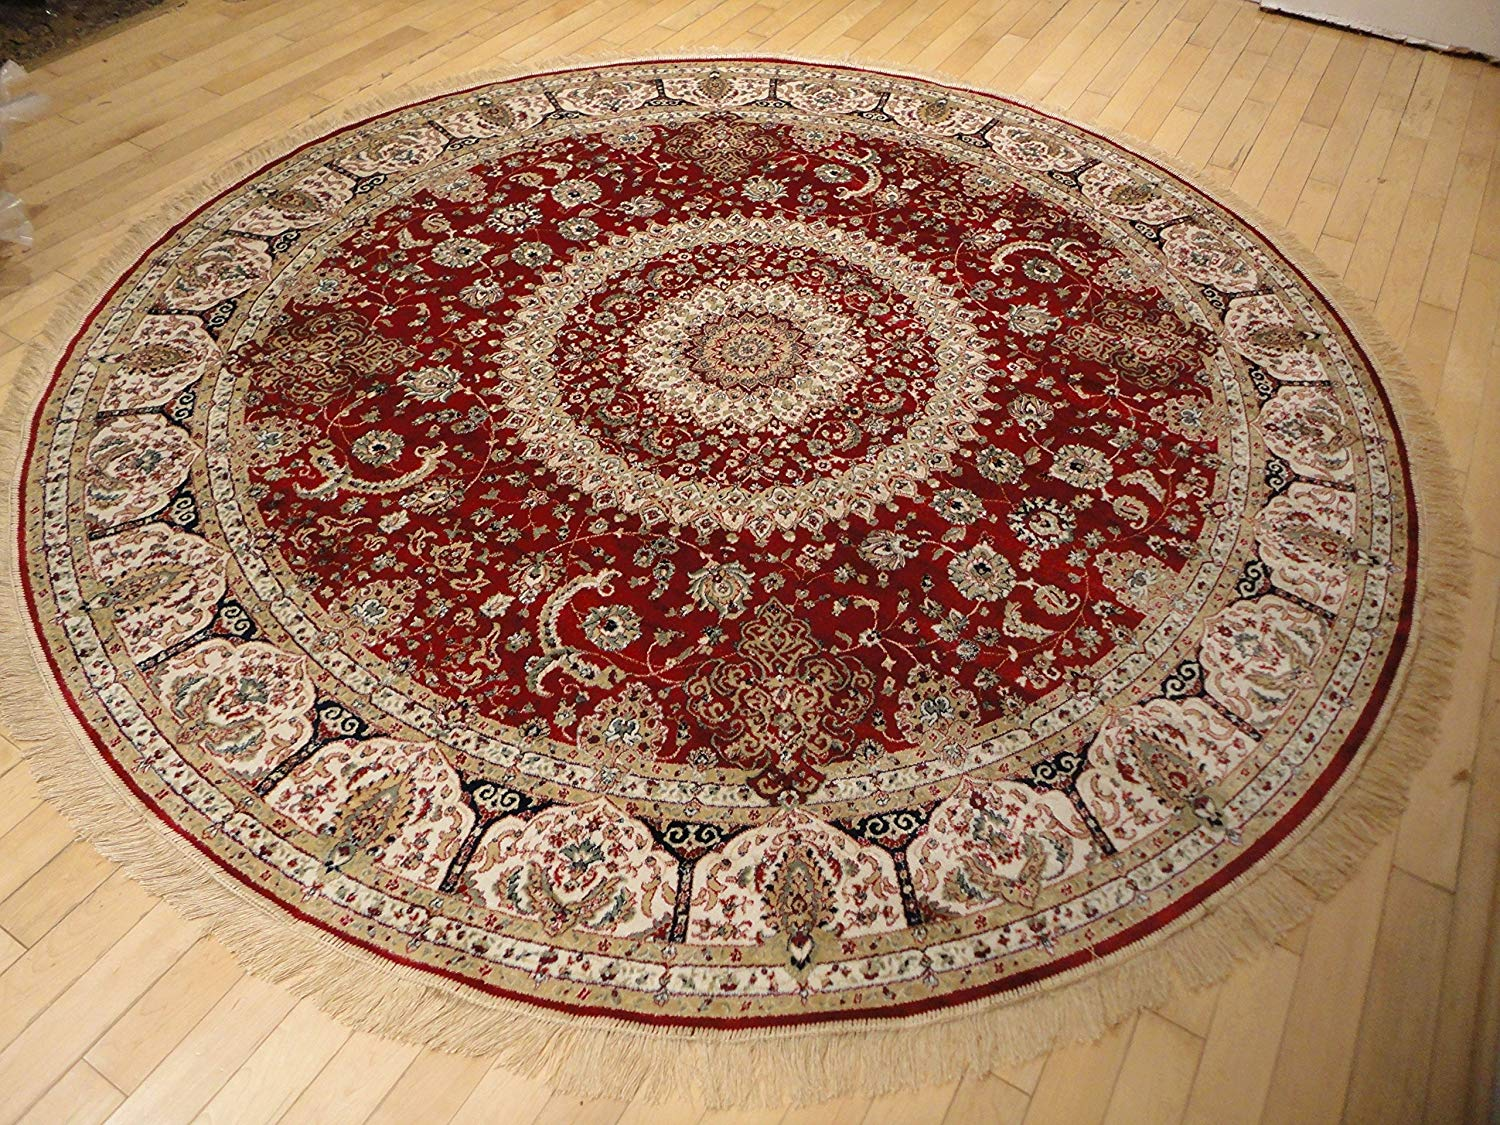 brown area rug with circles amazon.com: stunning silk persian area rugs traditional design red tabriz  8x8 round YUFFYPQ